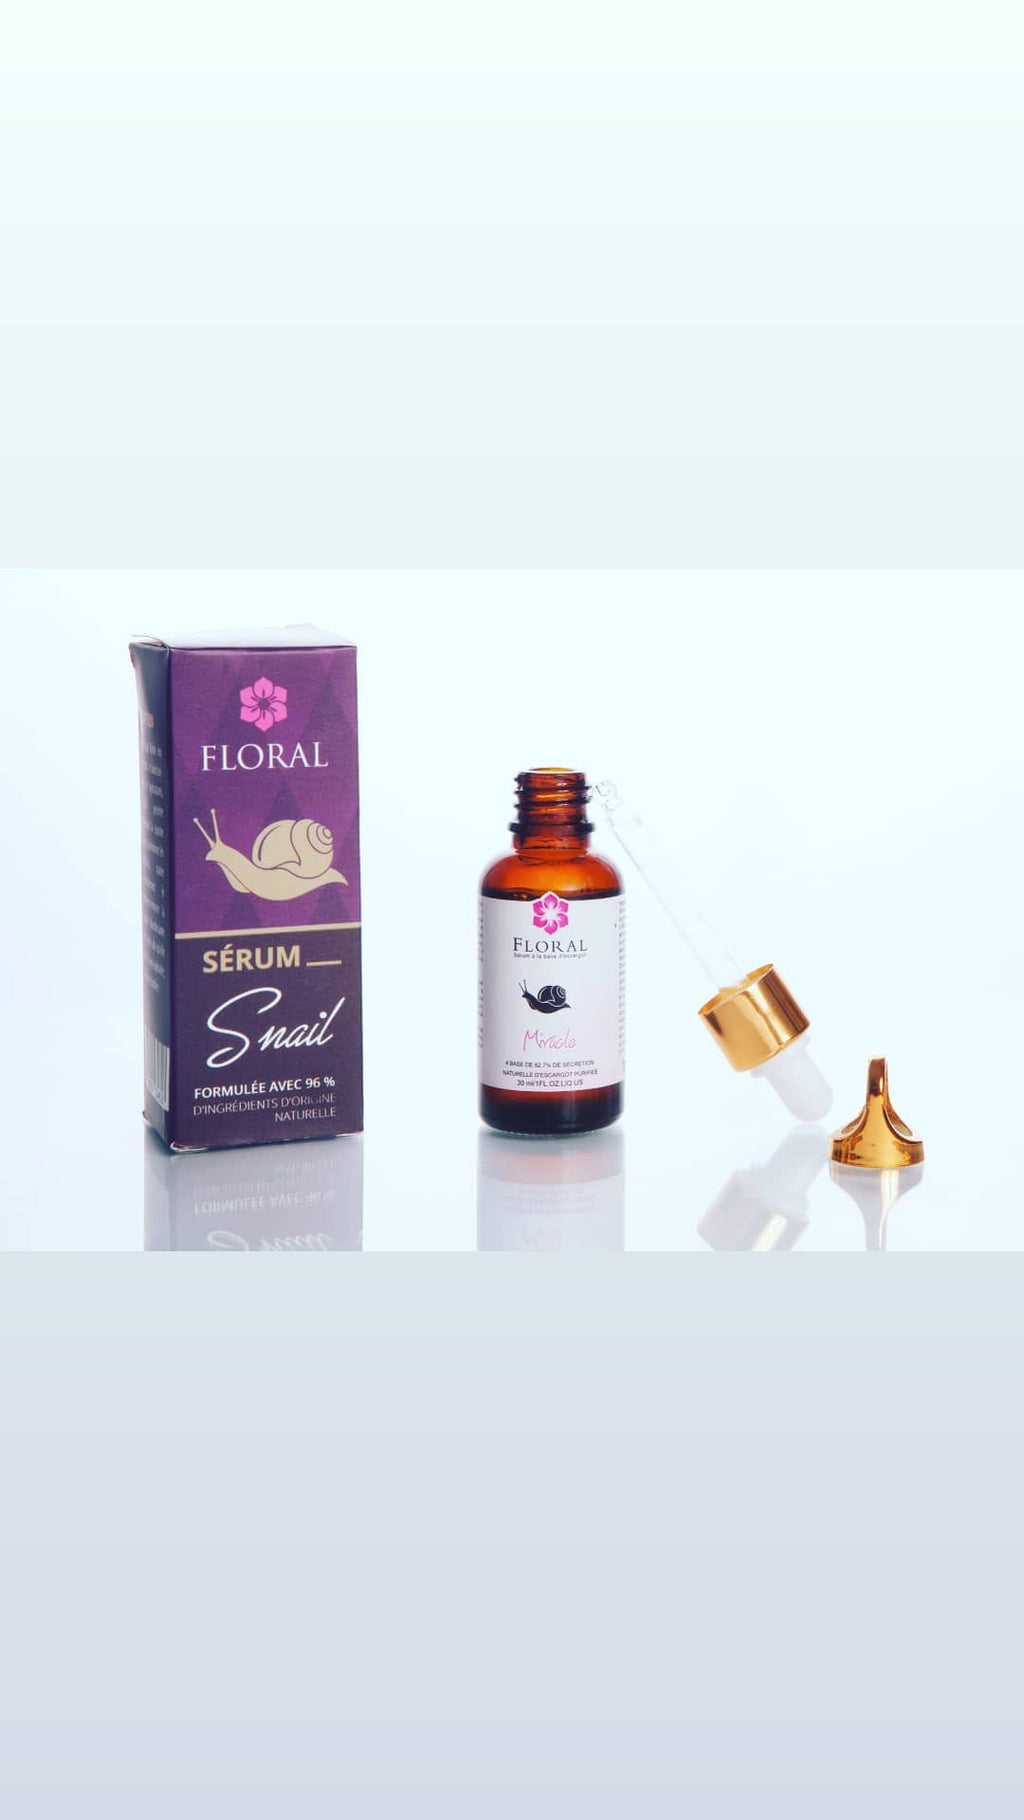 Serum bave d'escargot سيروم لعاب الحلزون